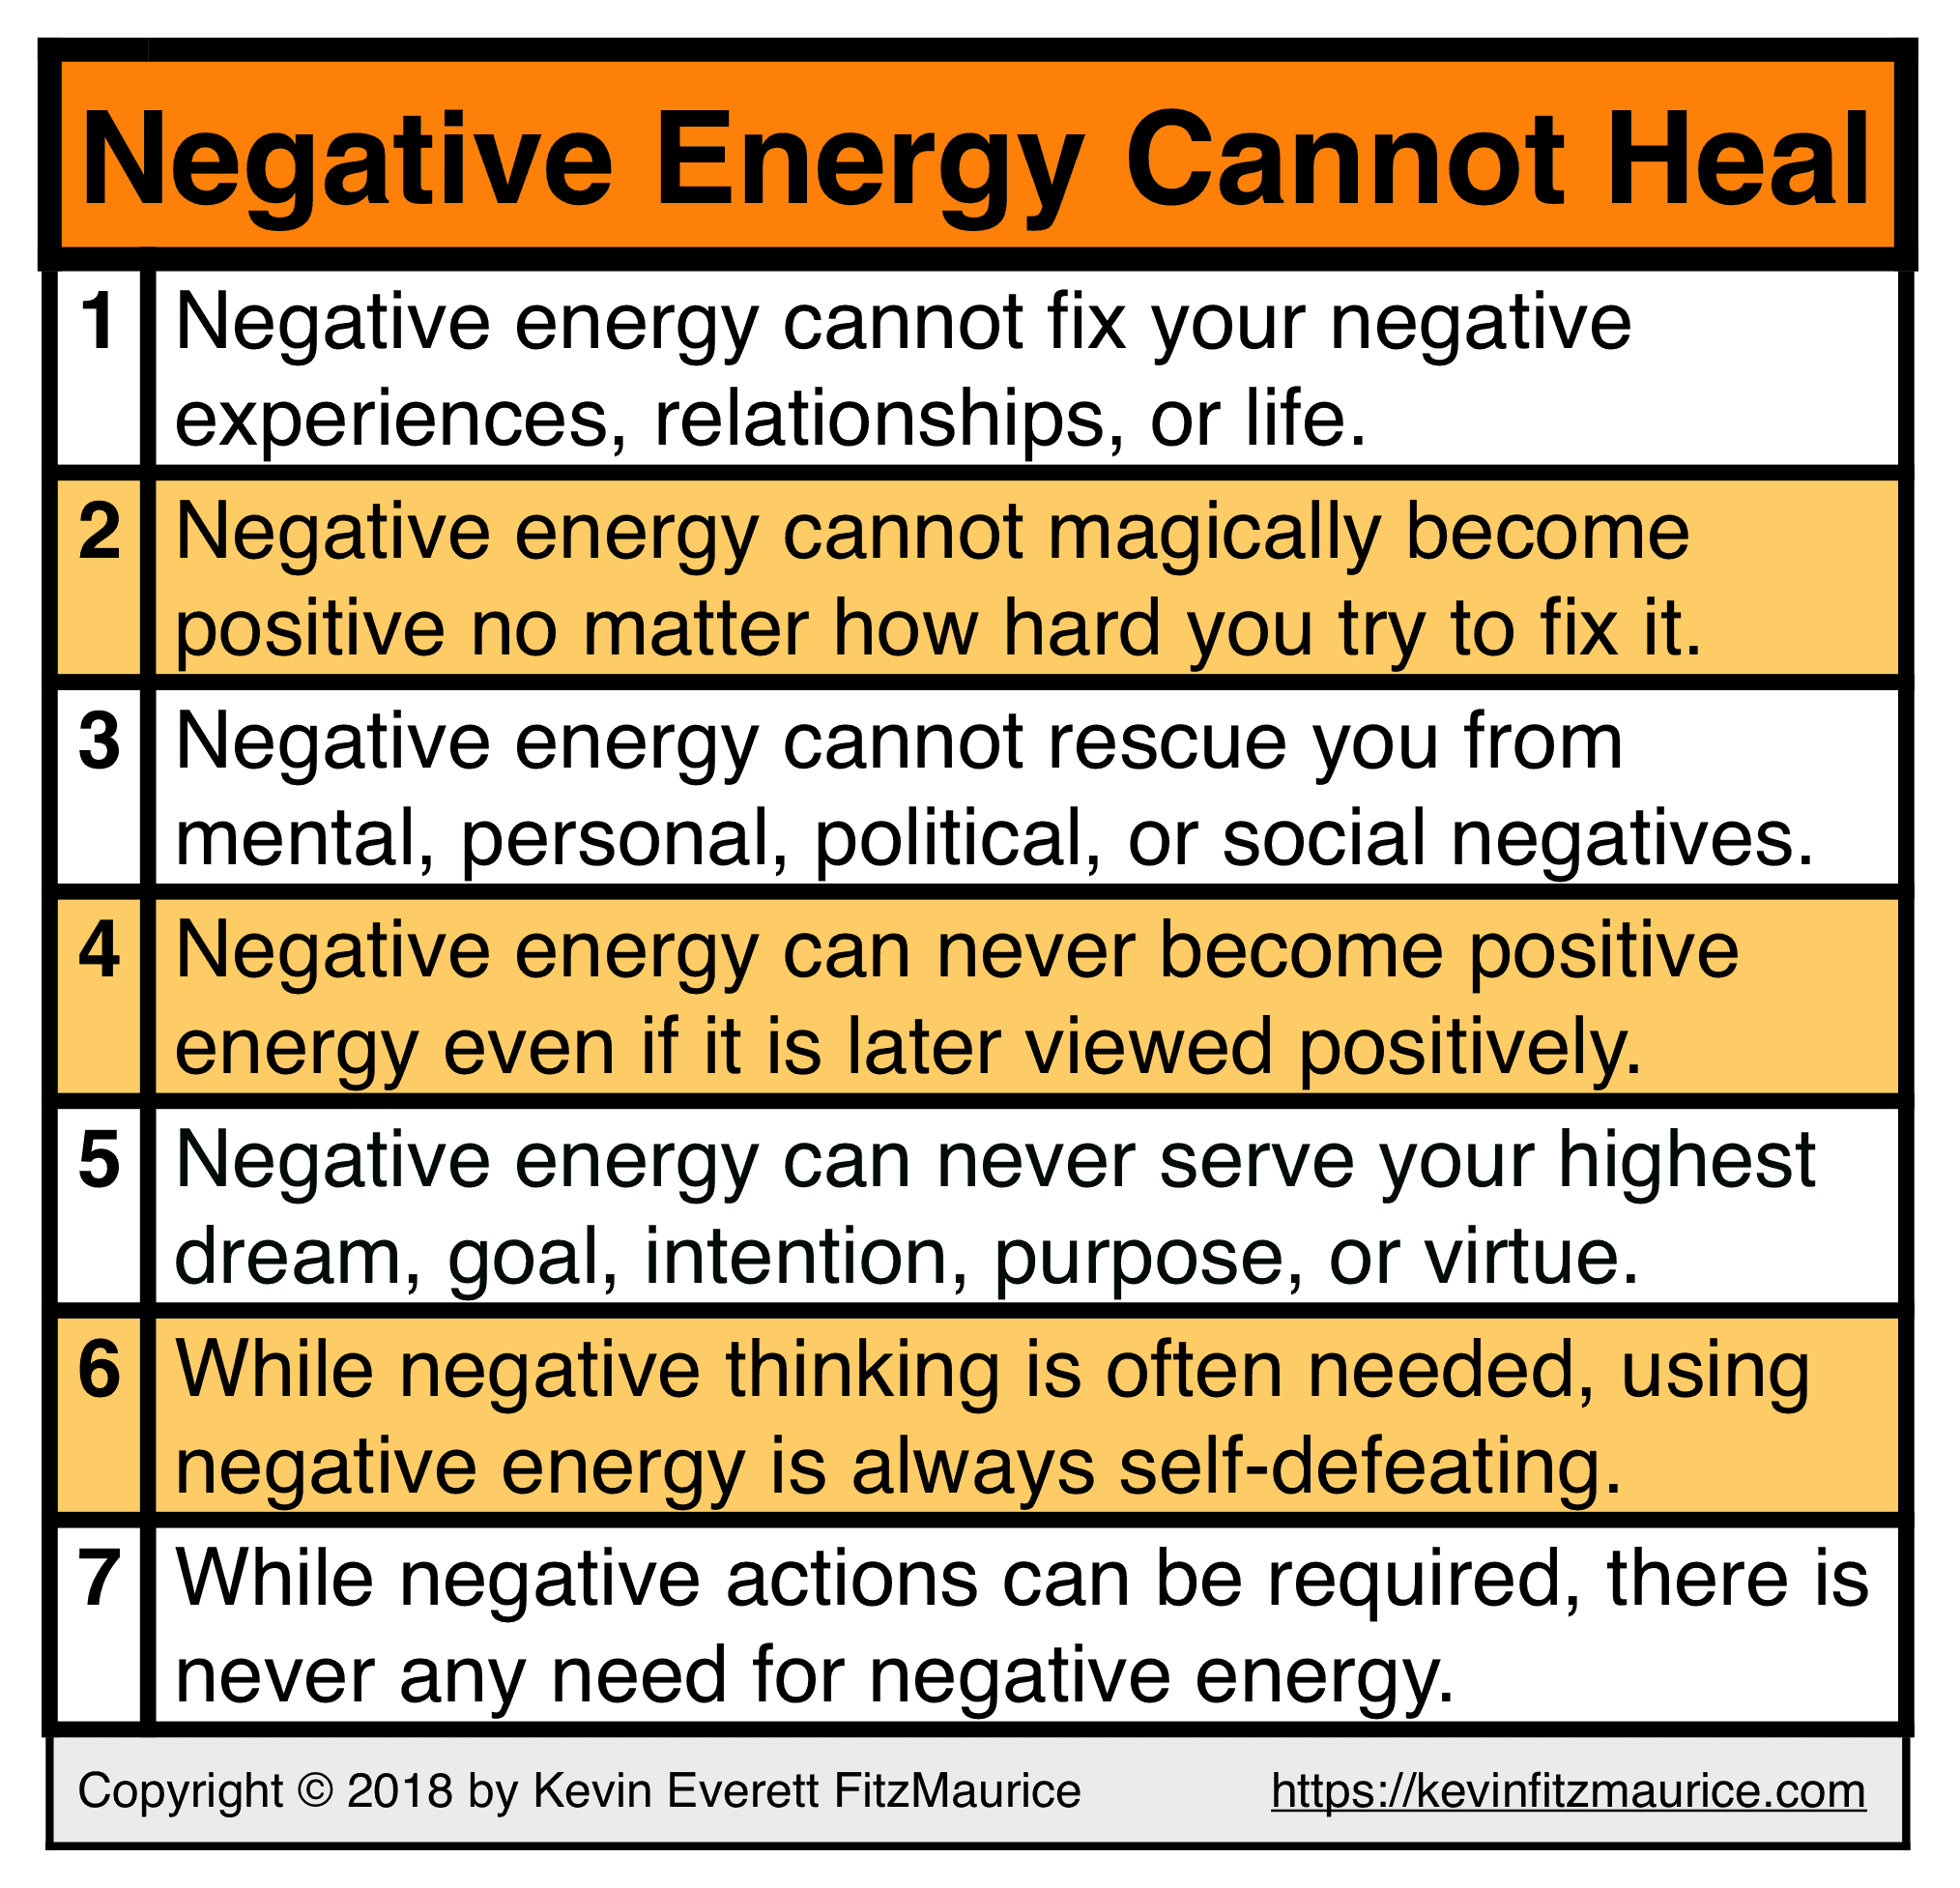 Negative Energy Always Fails to Help